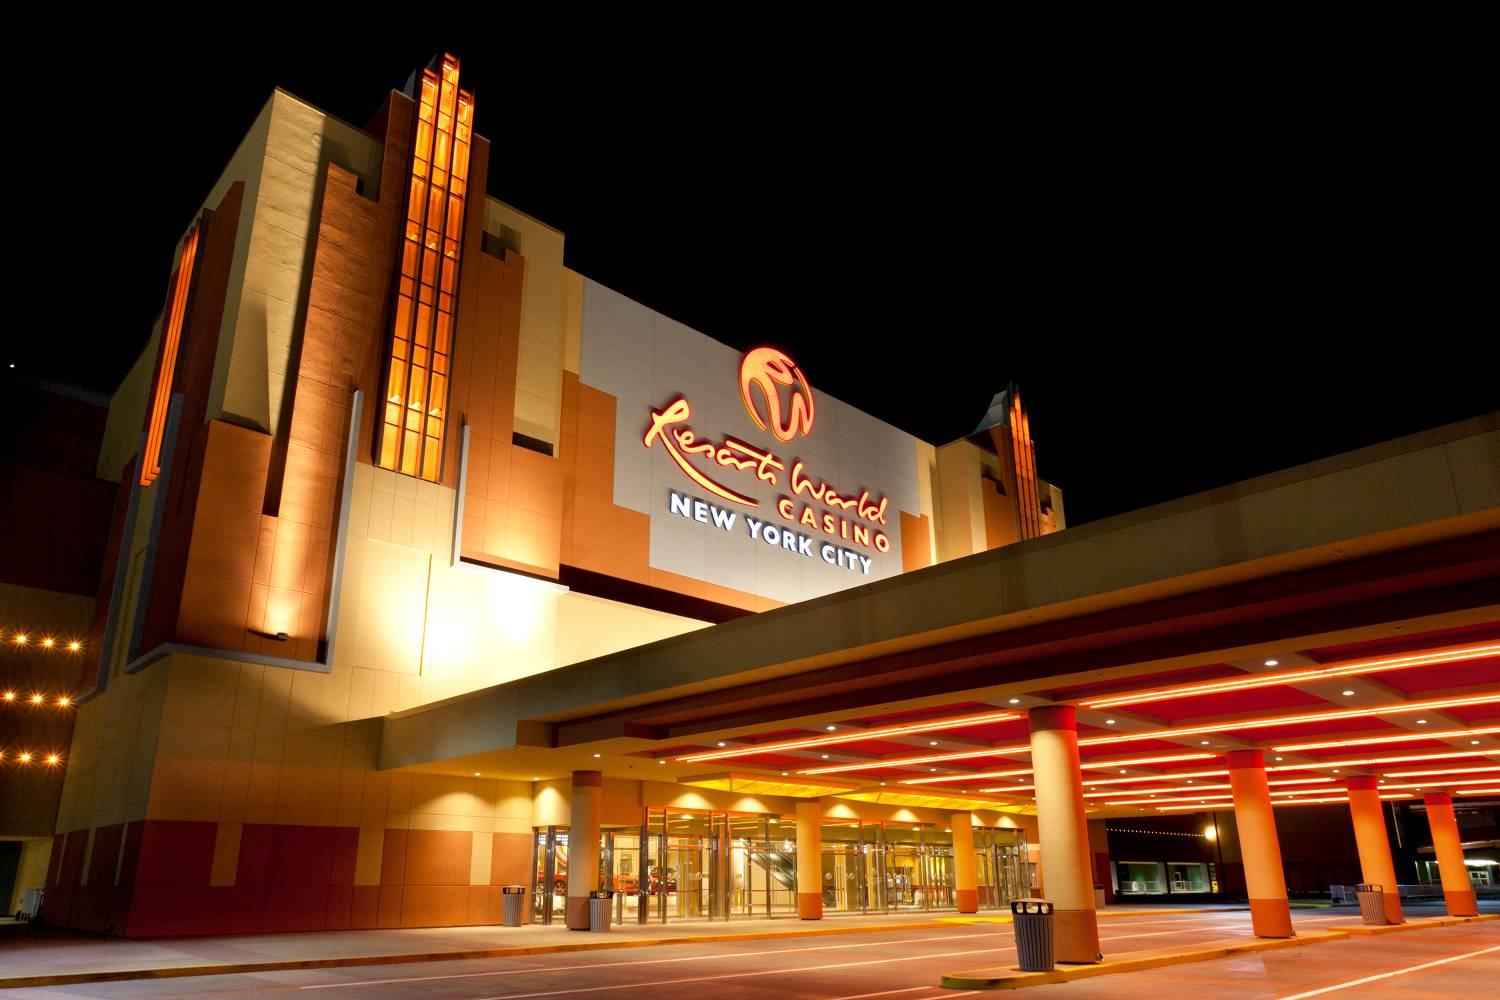 Resorts world casino new york city reviews